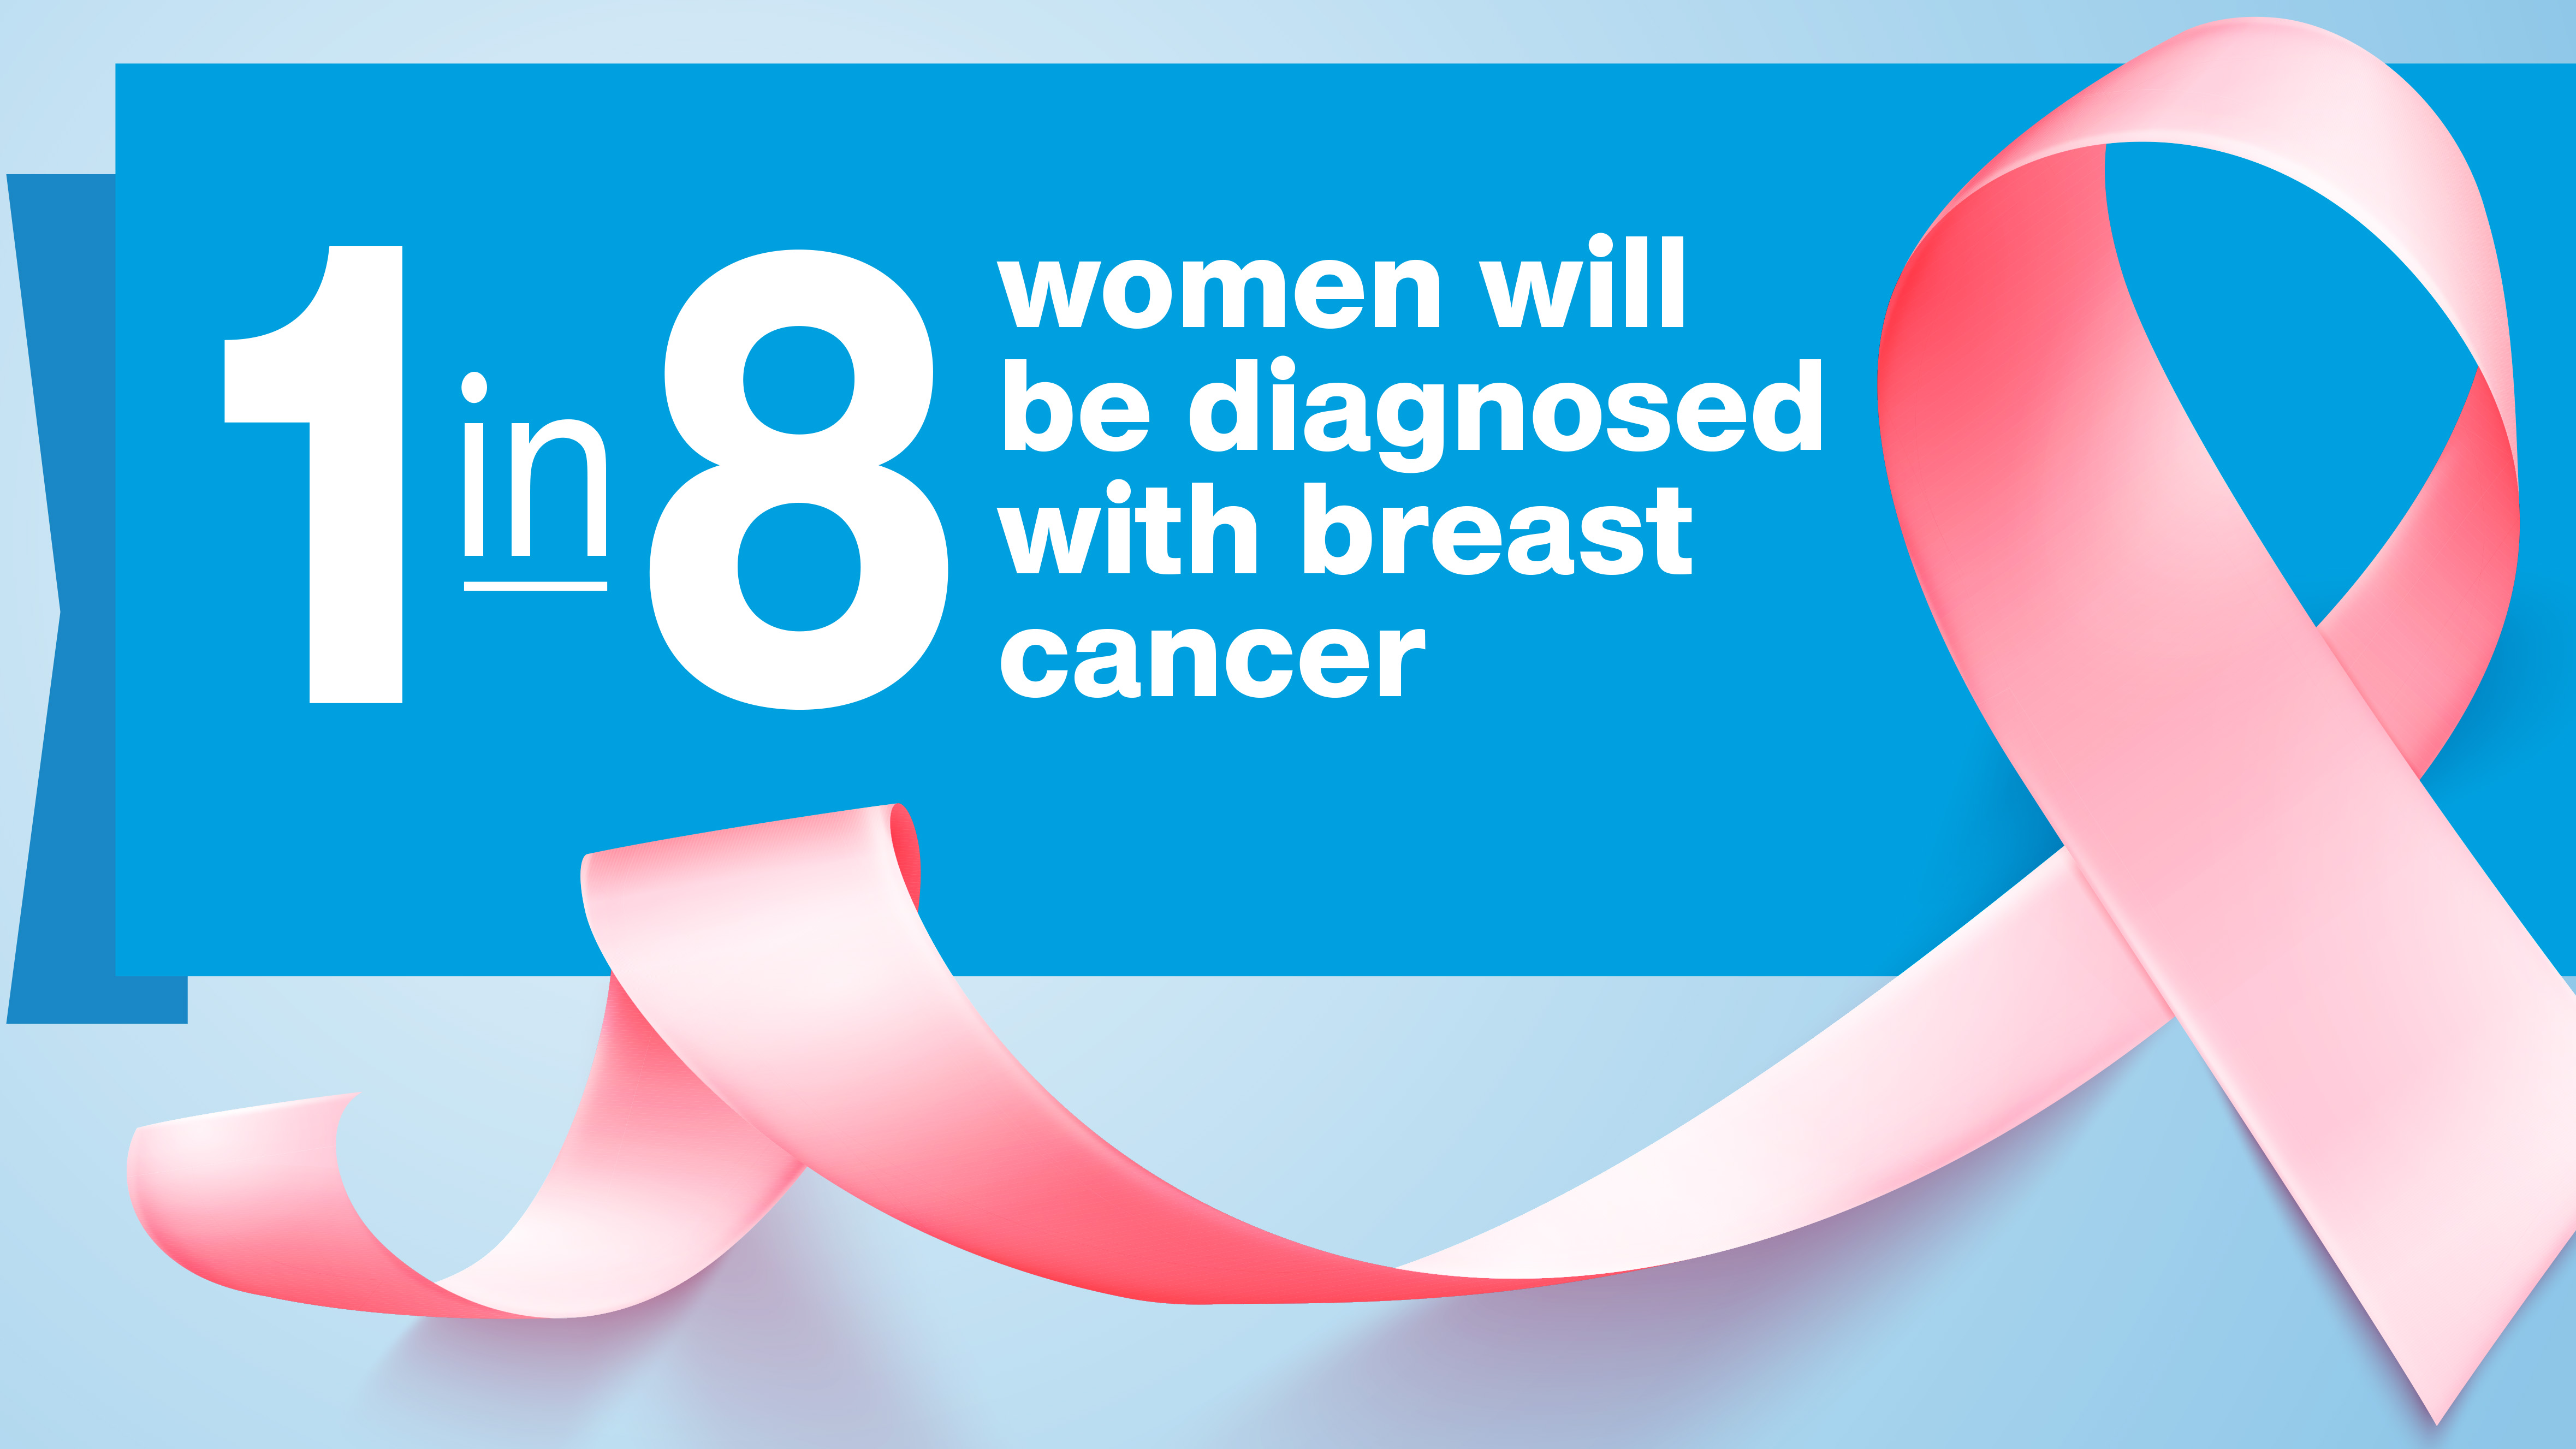 Infographic: Stats on breast cancer